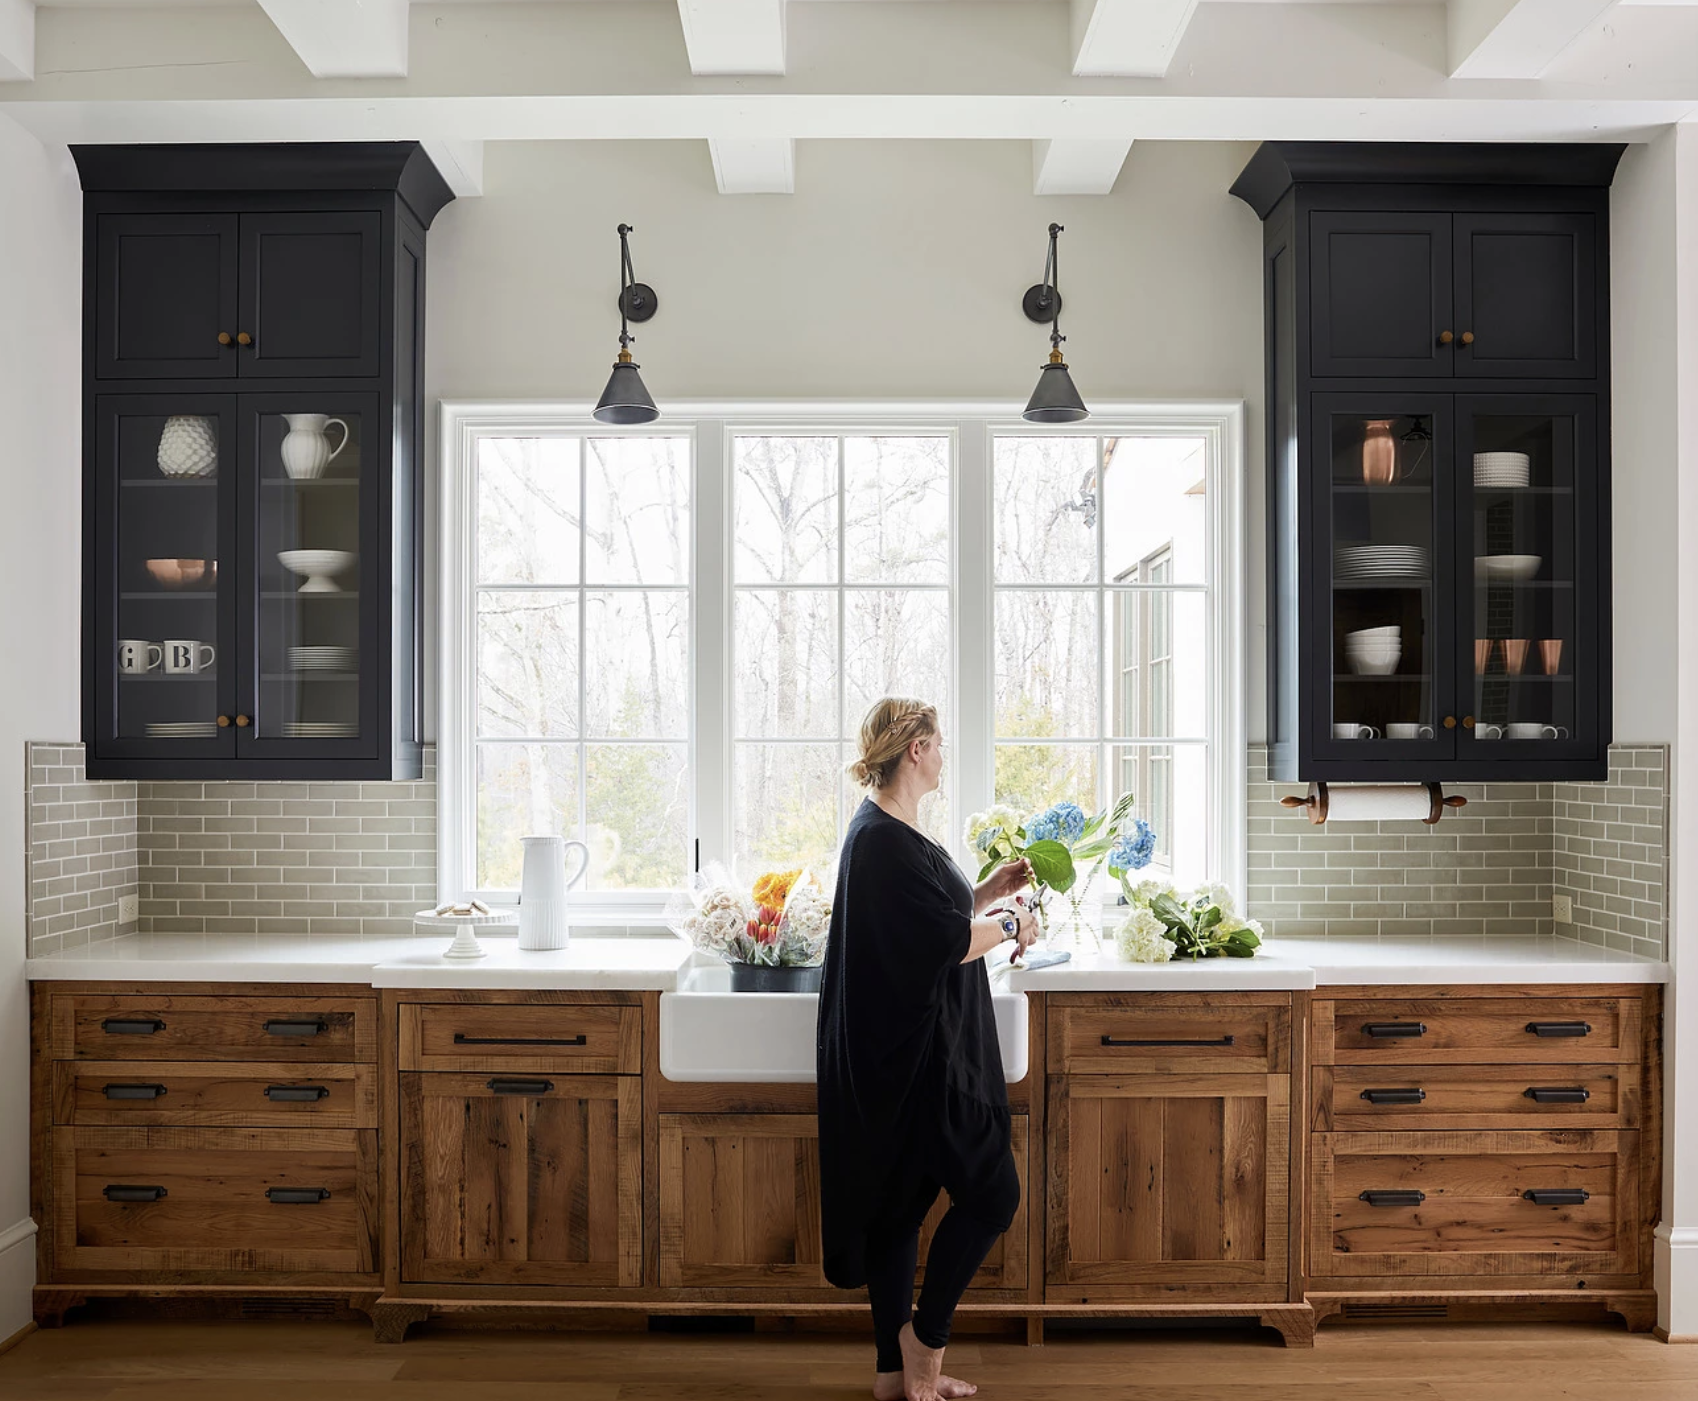 Introducing 10 Black Kitchen Cabinet Ideas That Are Oh So Decadent Hunker Rustic Kitchen Cabinets Rustic Kitchen Design Home Kitchens